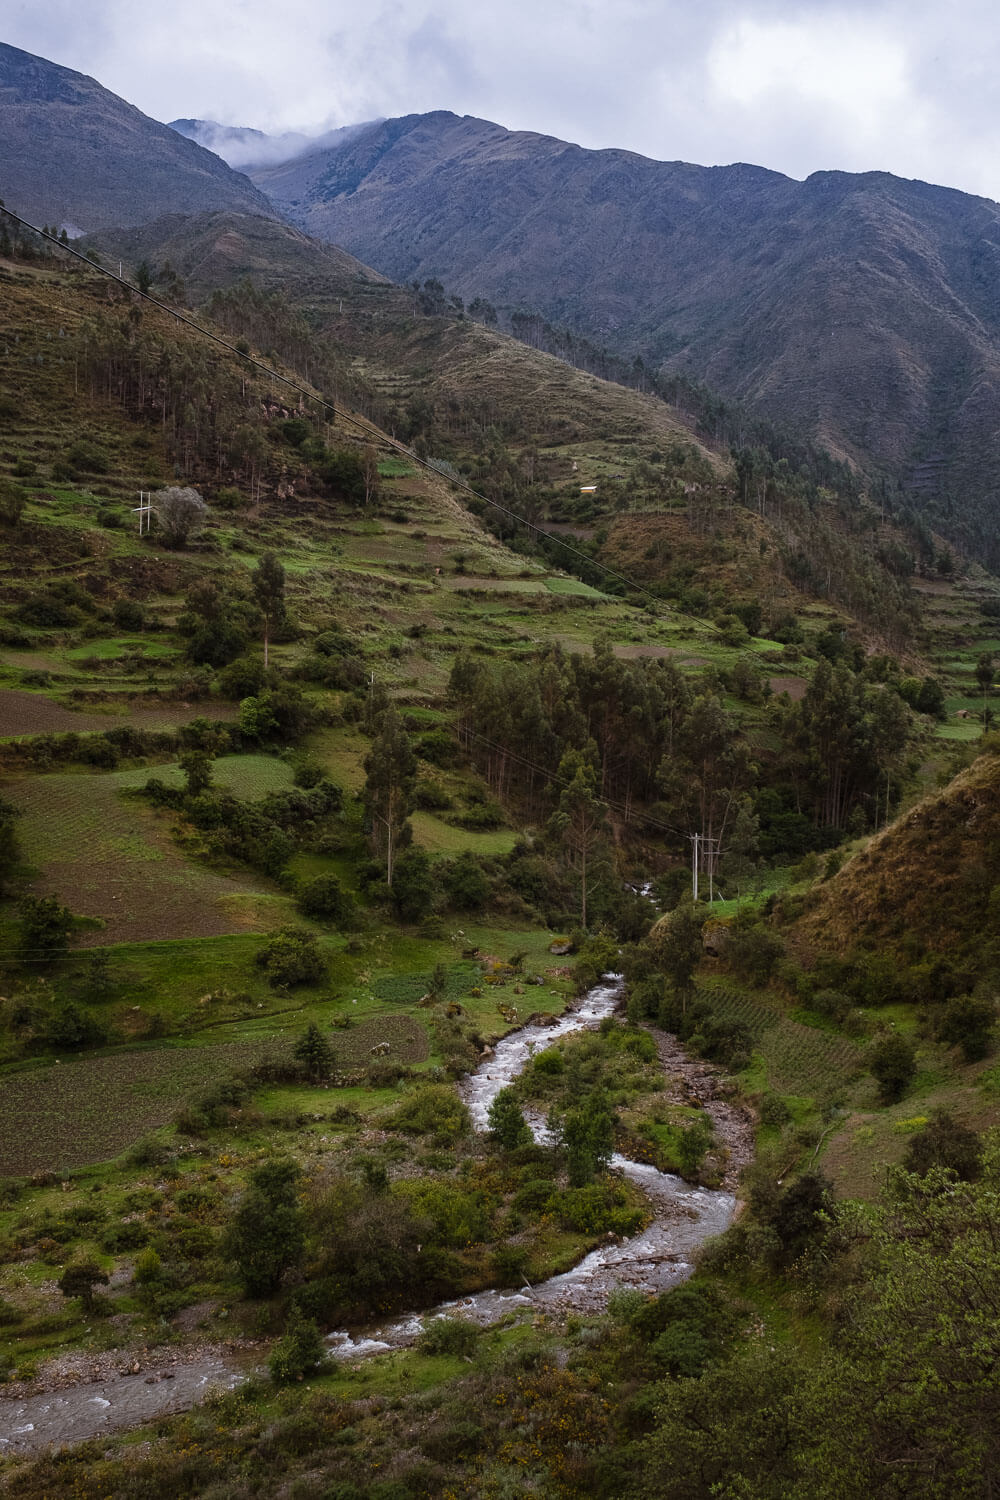 "The Sacred Valley, Peru. Travel photography and guide by © Natasha Lequepeys for ""And Then I Met Yoko"". #peru #sacredvalley #patacancha #photoblog #travelblog #travelphotography #landscapephotography #travelitinerary #fujifilm #river #tradition #culture #nature #andes #village #valley #cusco #ollantaytambo #travel #travelperu"